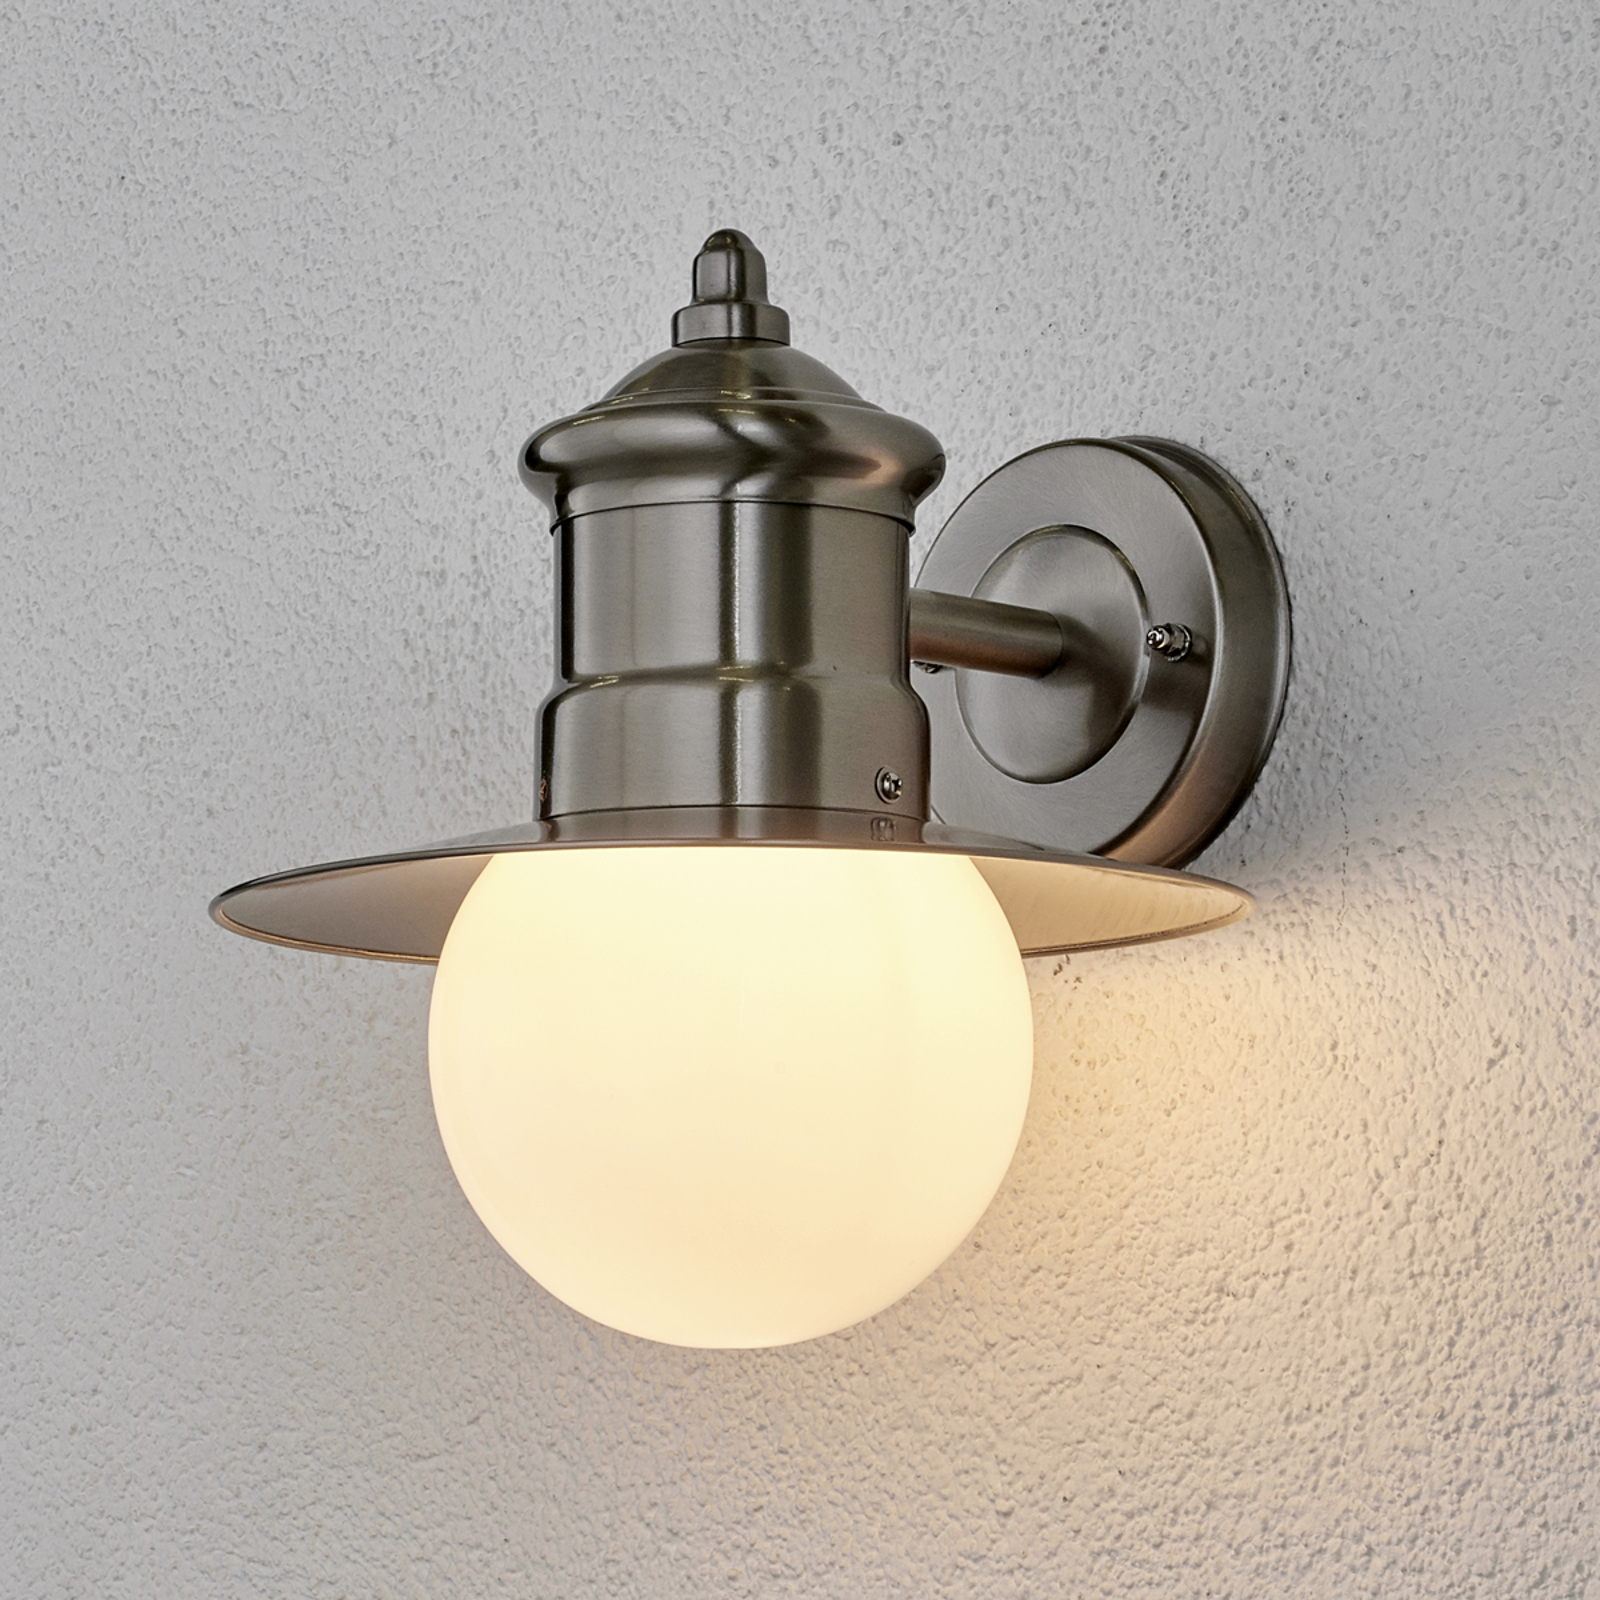 Stainless steel wall light for outdoors_9960033_1